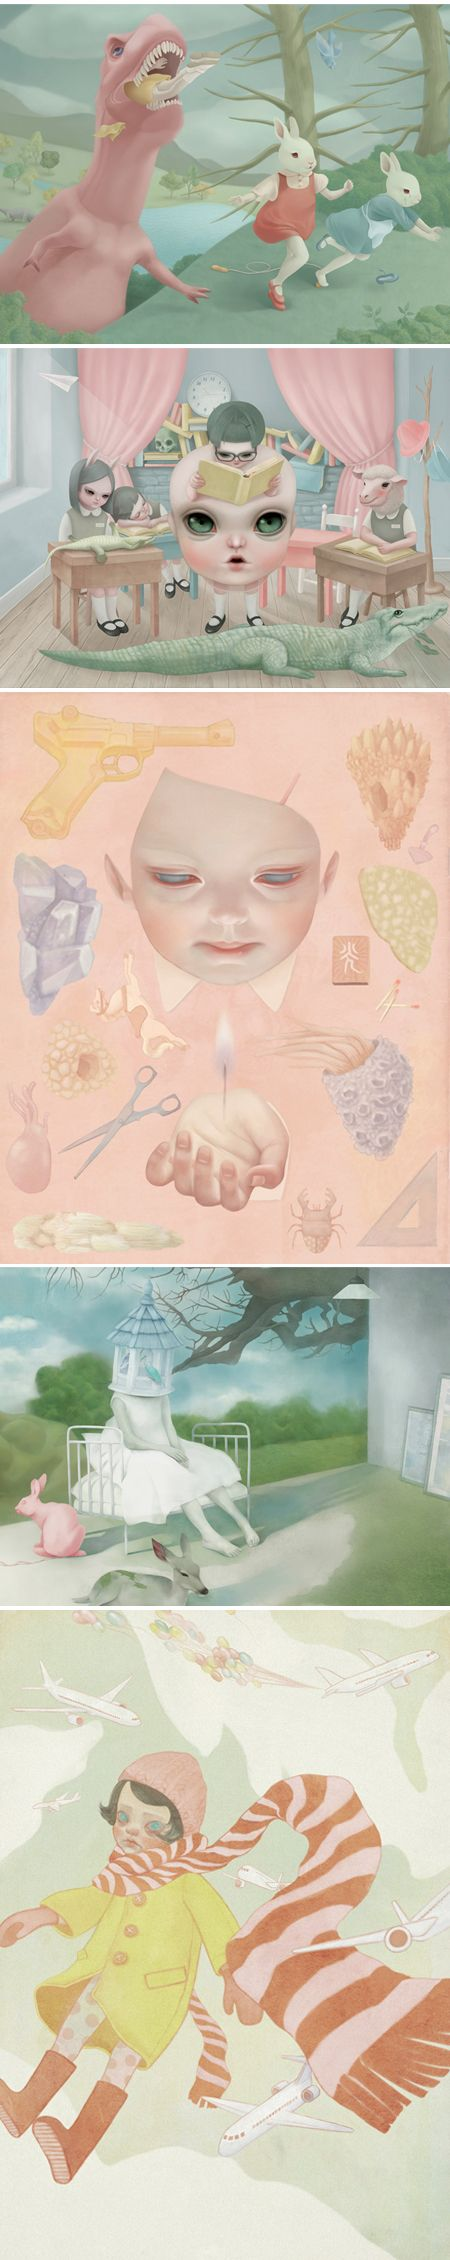 Hsiao-Ron Cheng1... chilling